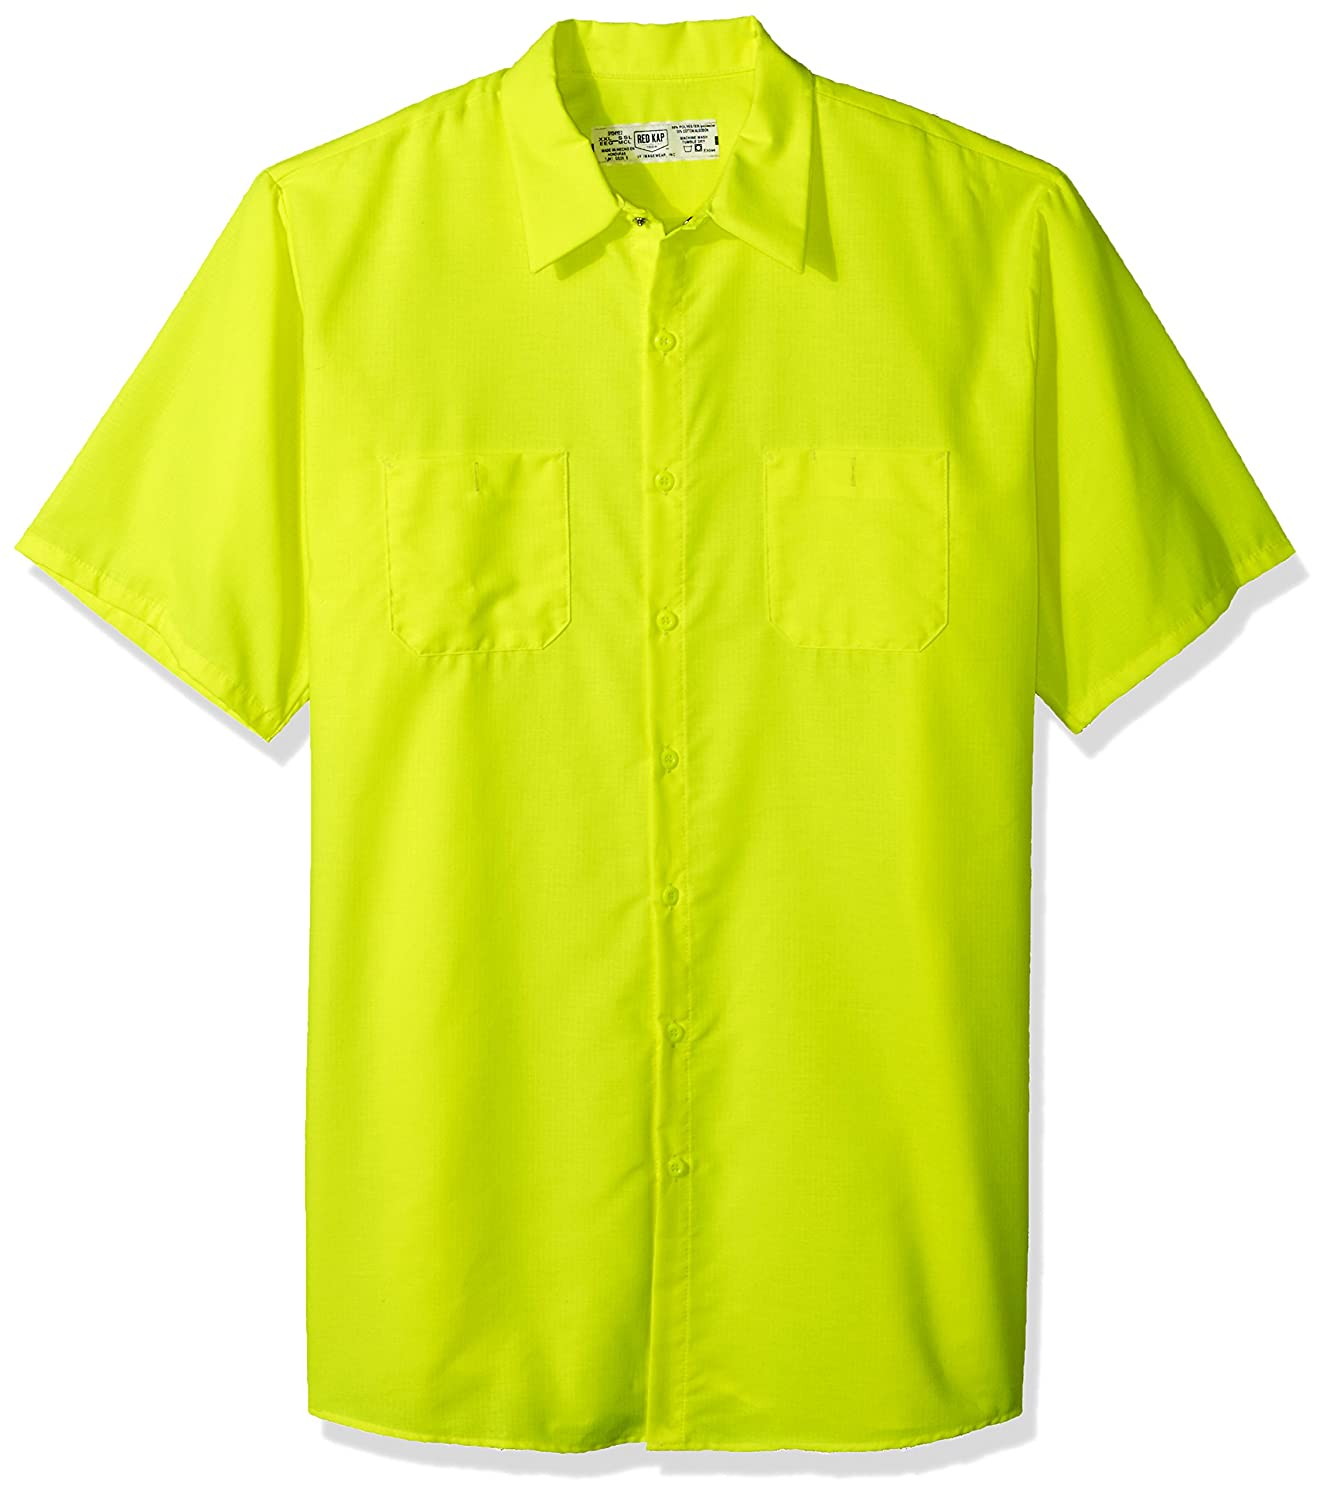 Red Kap SHIRT メンズ B072ZRNQGT XXXX-Large|Fluorescent Yellow/Green Fluorescent Yellow/Green XXXX-Large